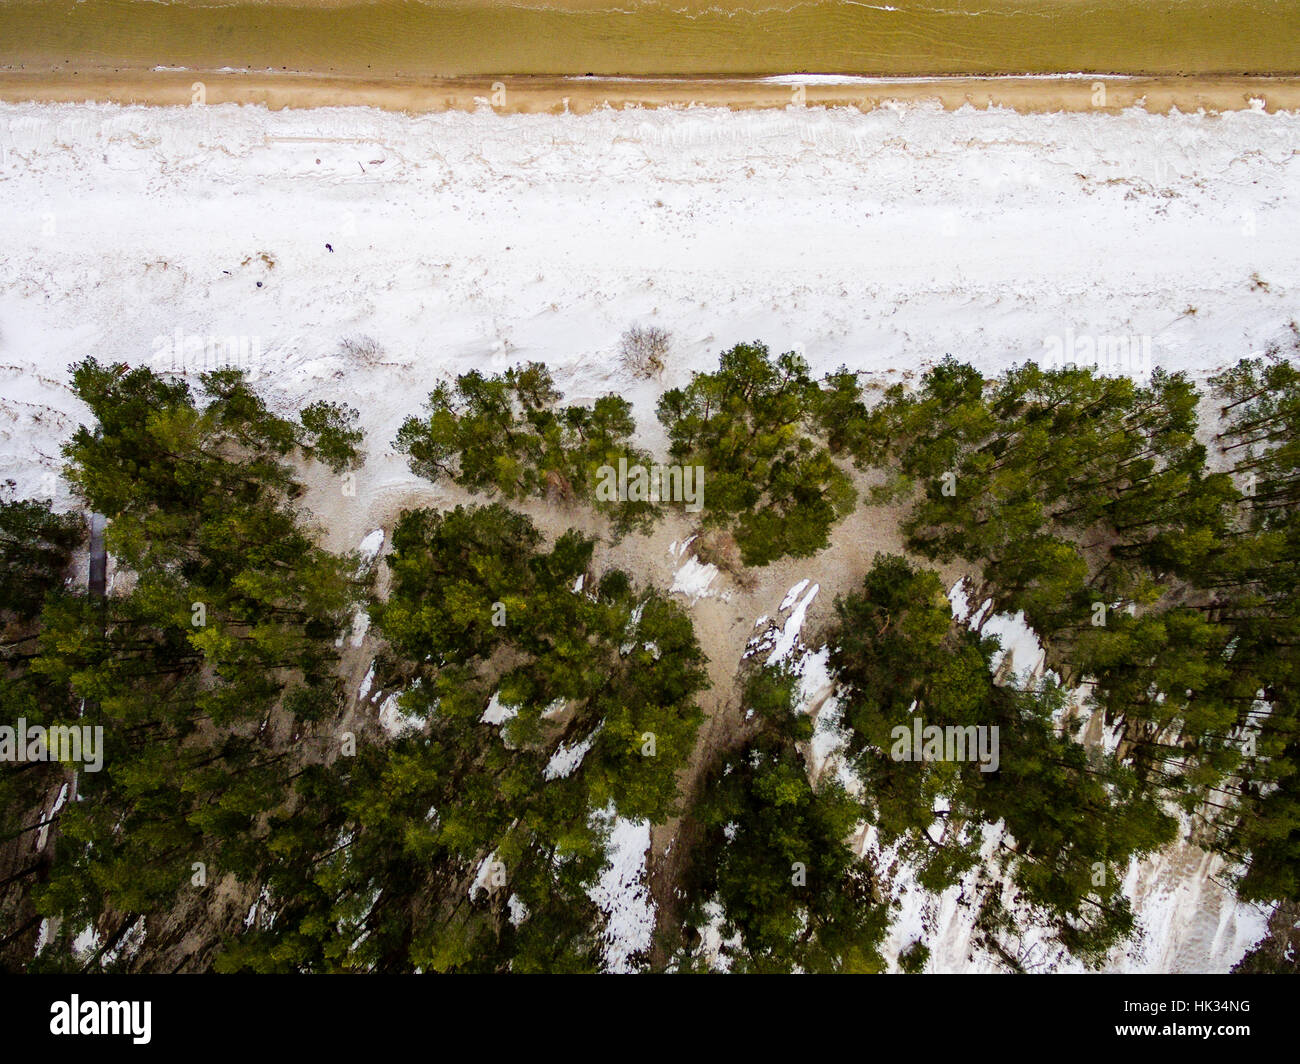 aerial view of frozen beach in winter. drone photography. sea with waves. - Stock Image